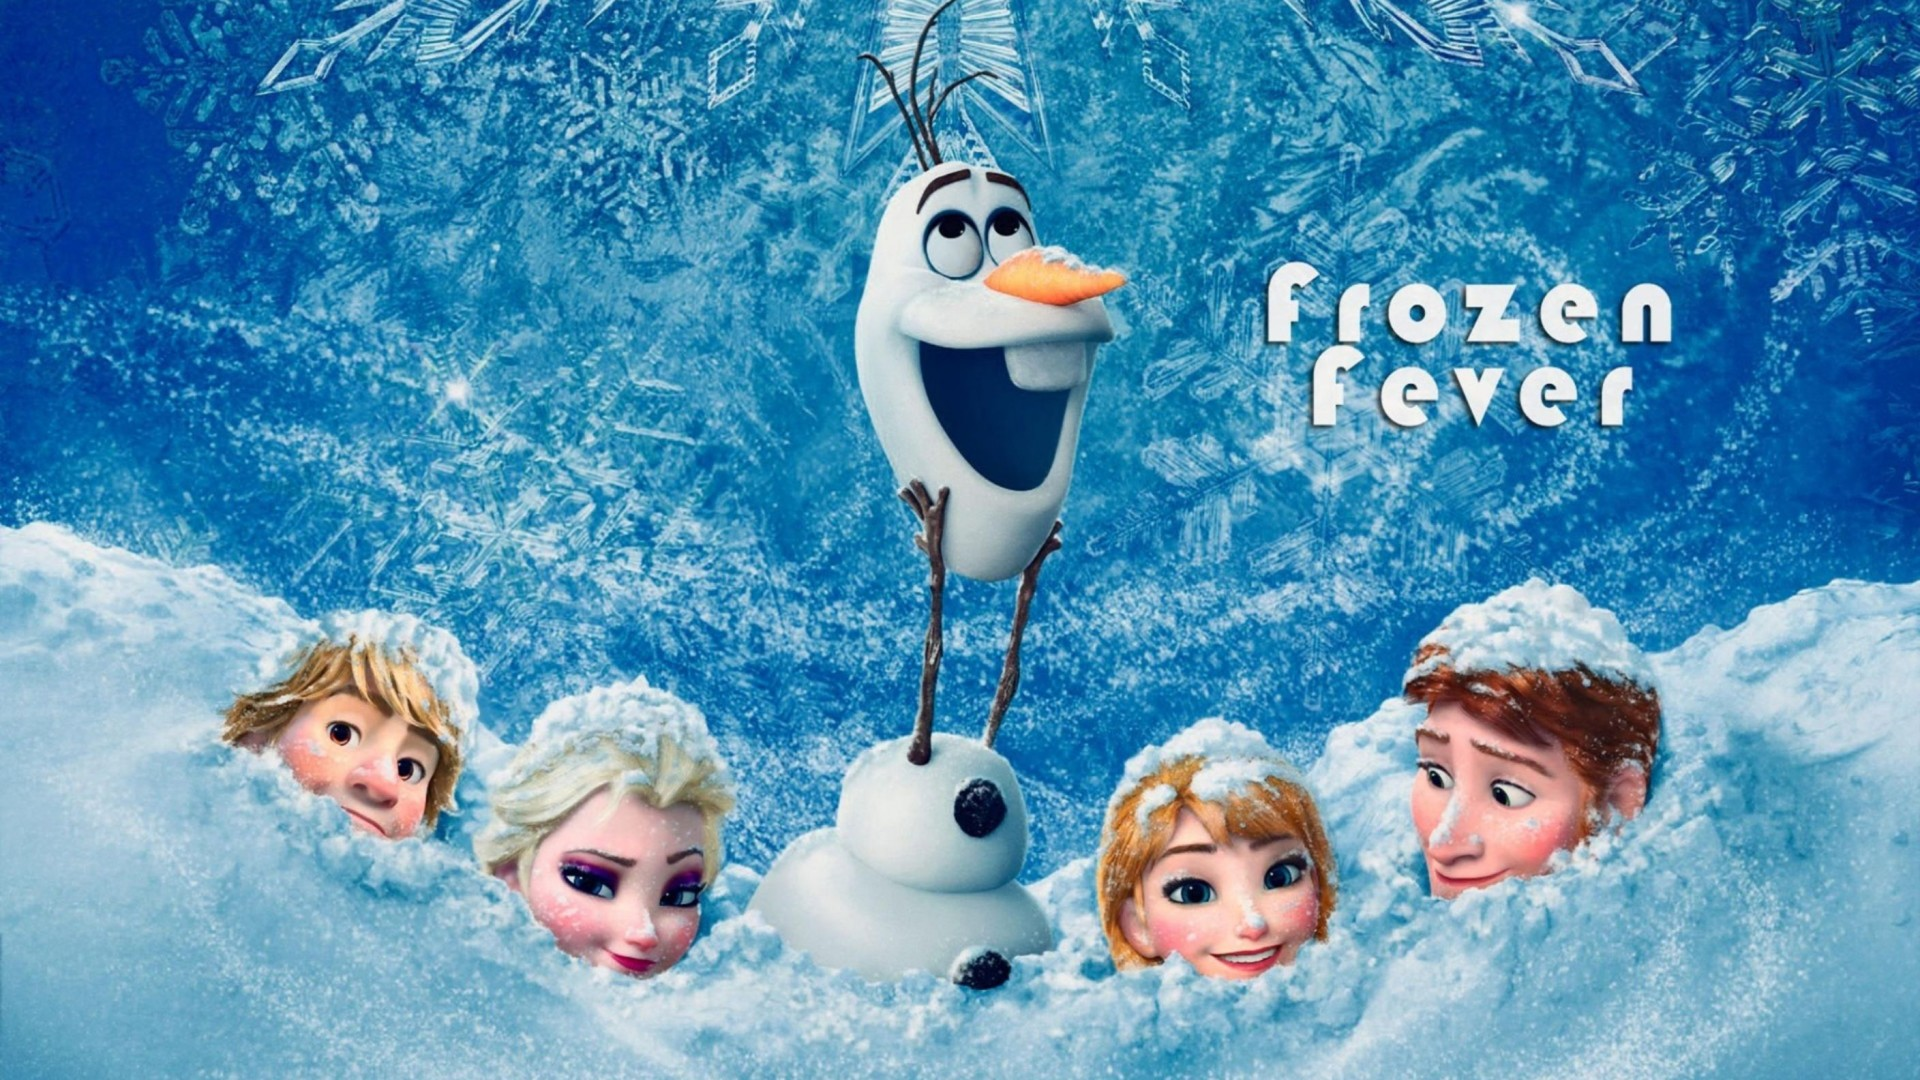 Disney Quotes Iphone 5 Wallpaper Frozen Fever Movie 2015 Wallpaper Desktop Hd Wallpaper